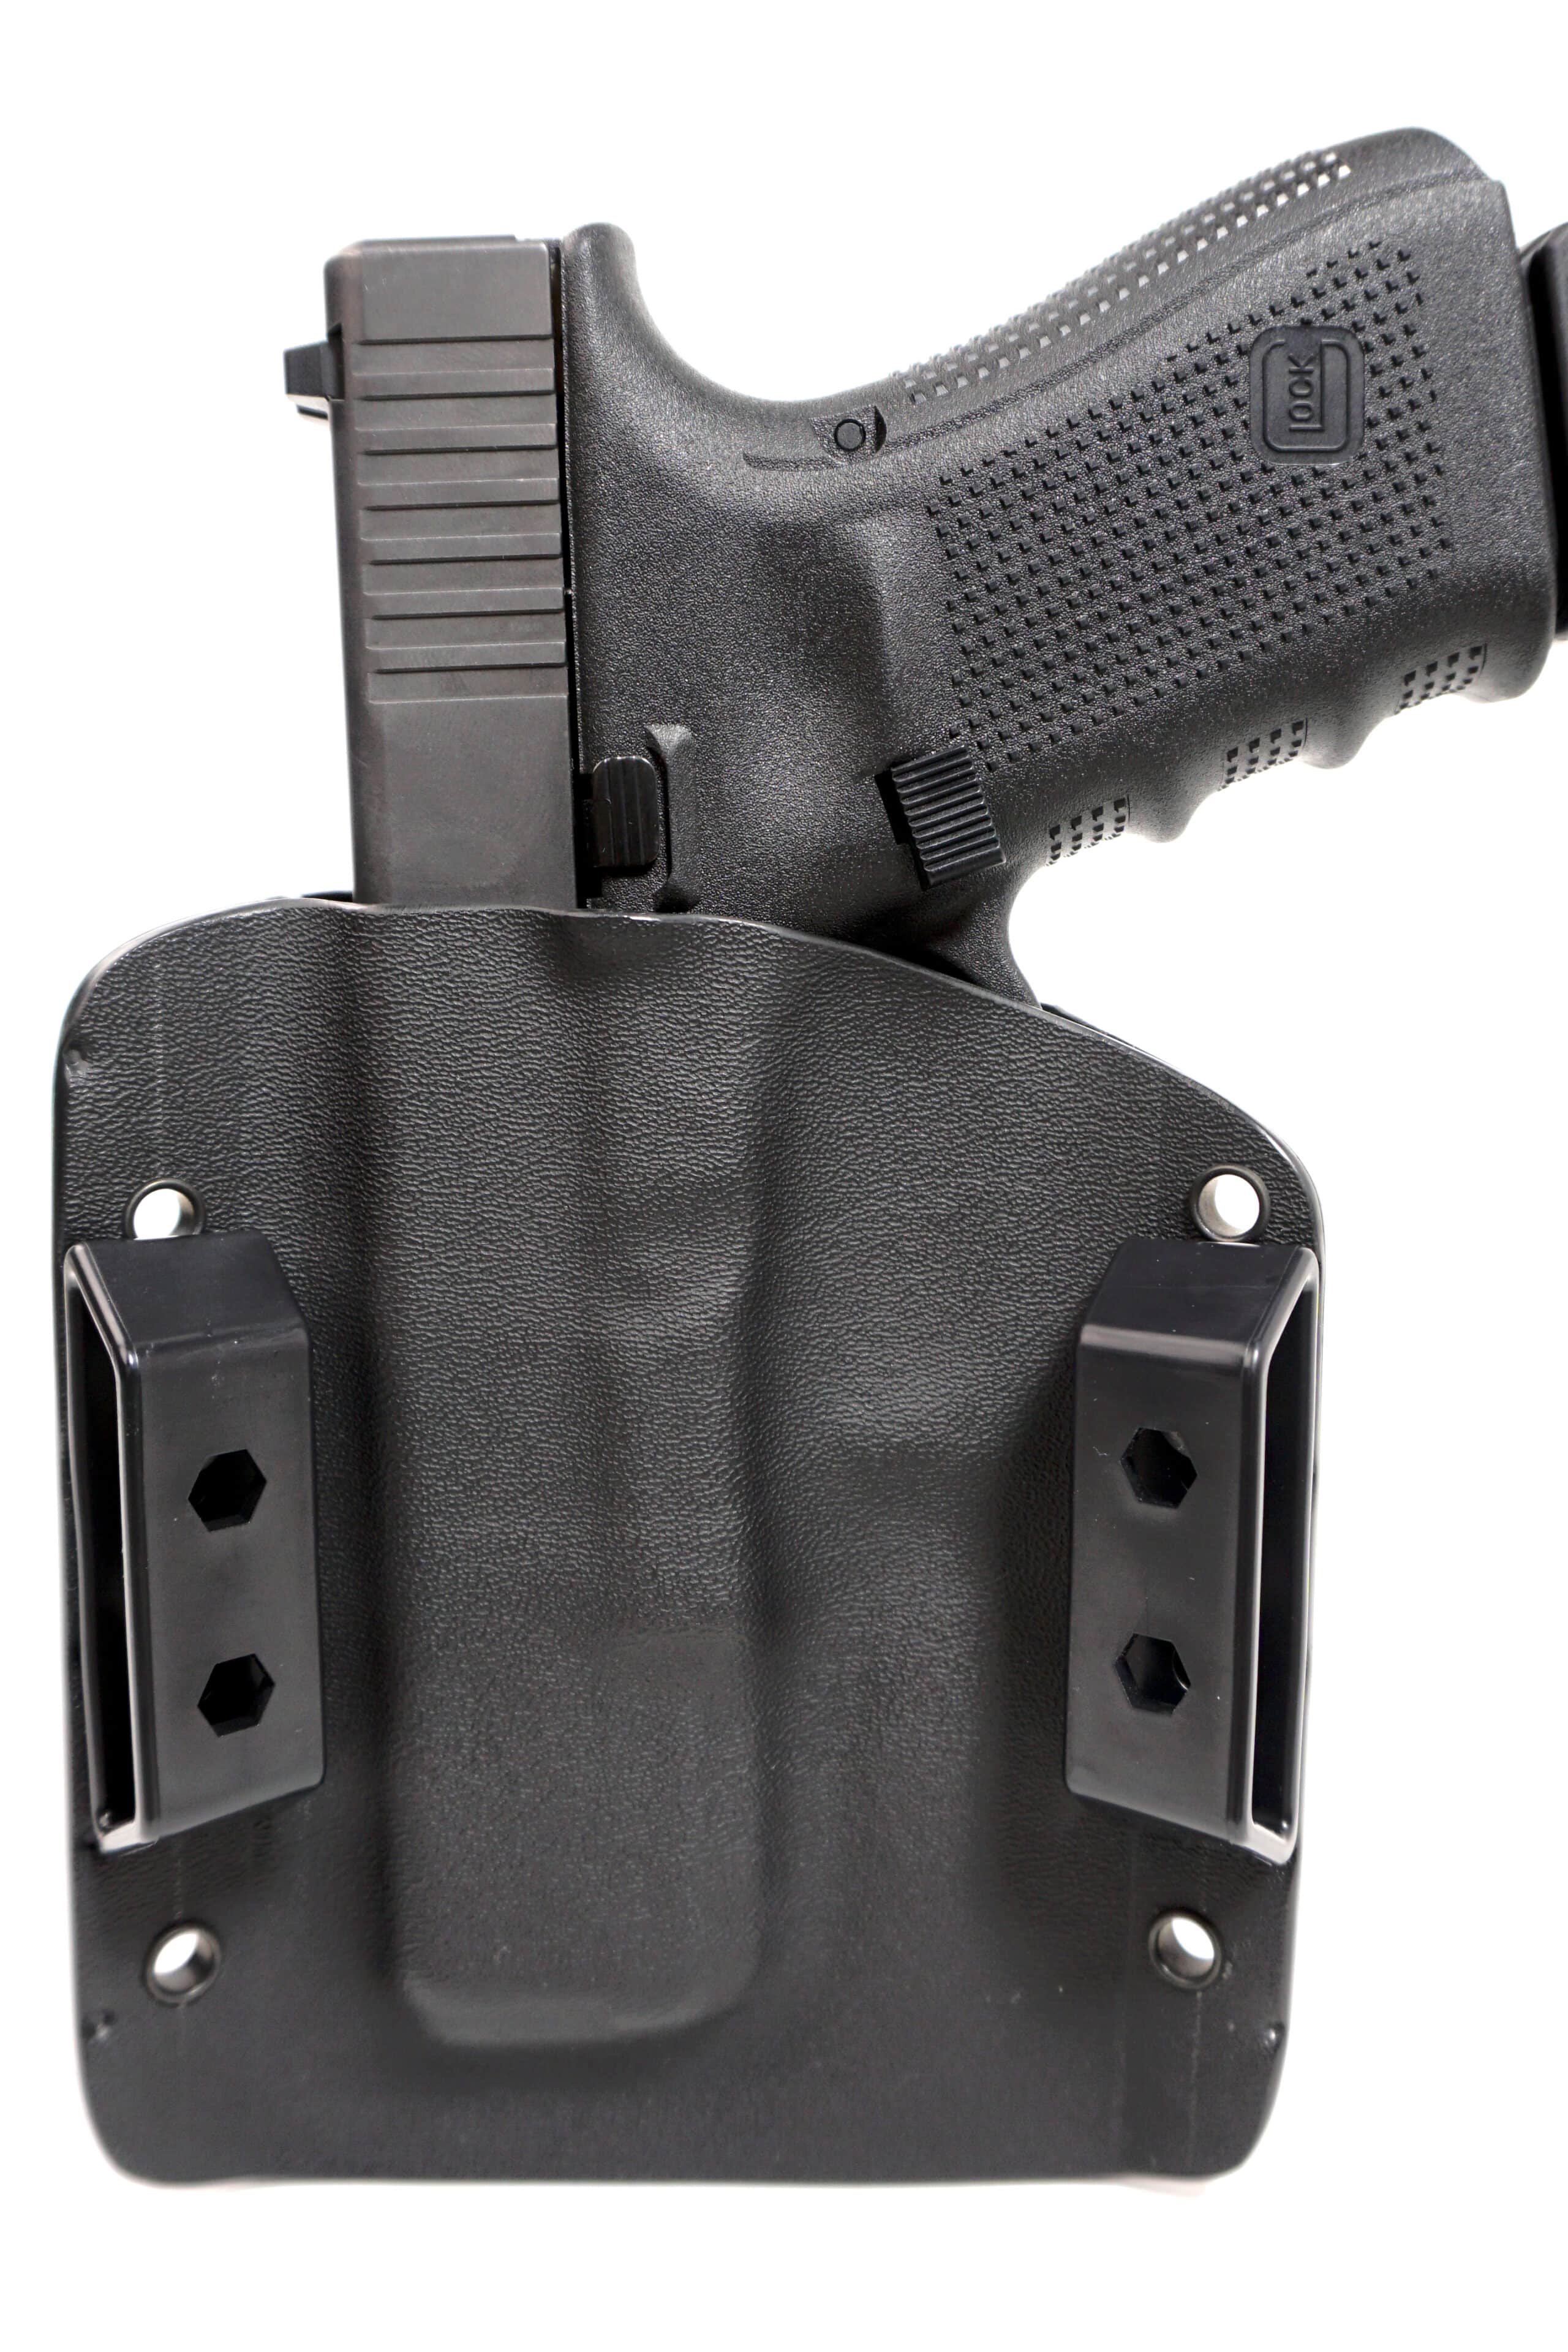 Glock 19 / 23 with Streamlight TLR-1 OWB Kydex Holster